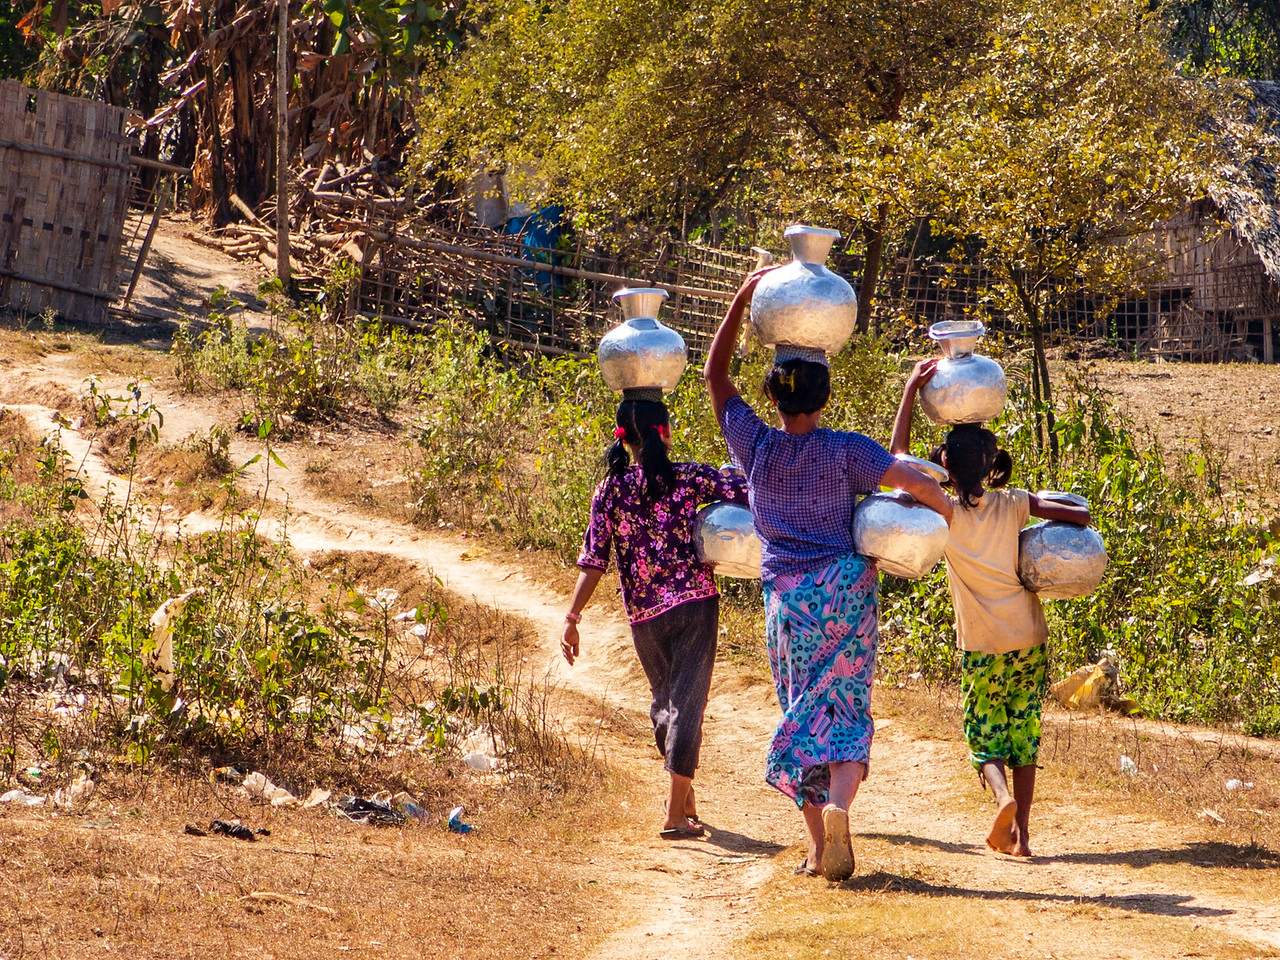 Women Carrying Water in Mrauk OO, Myanmar